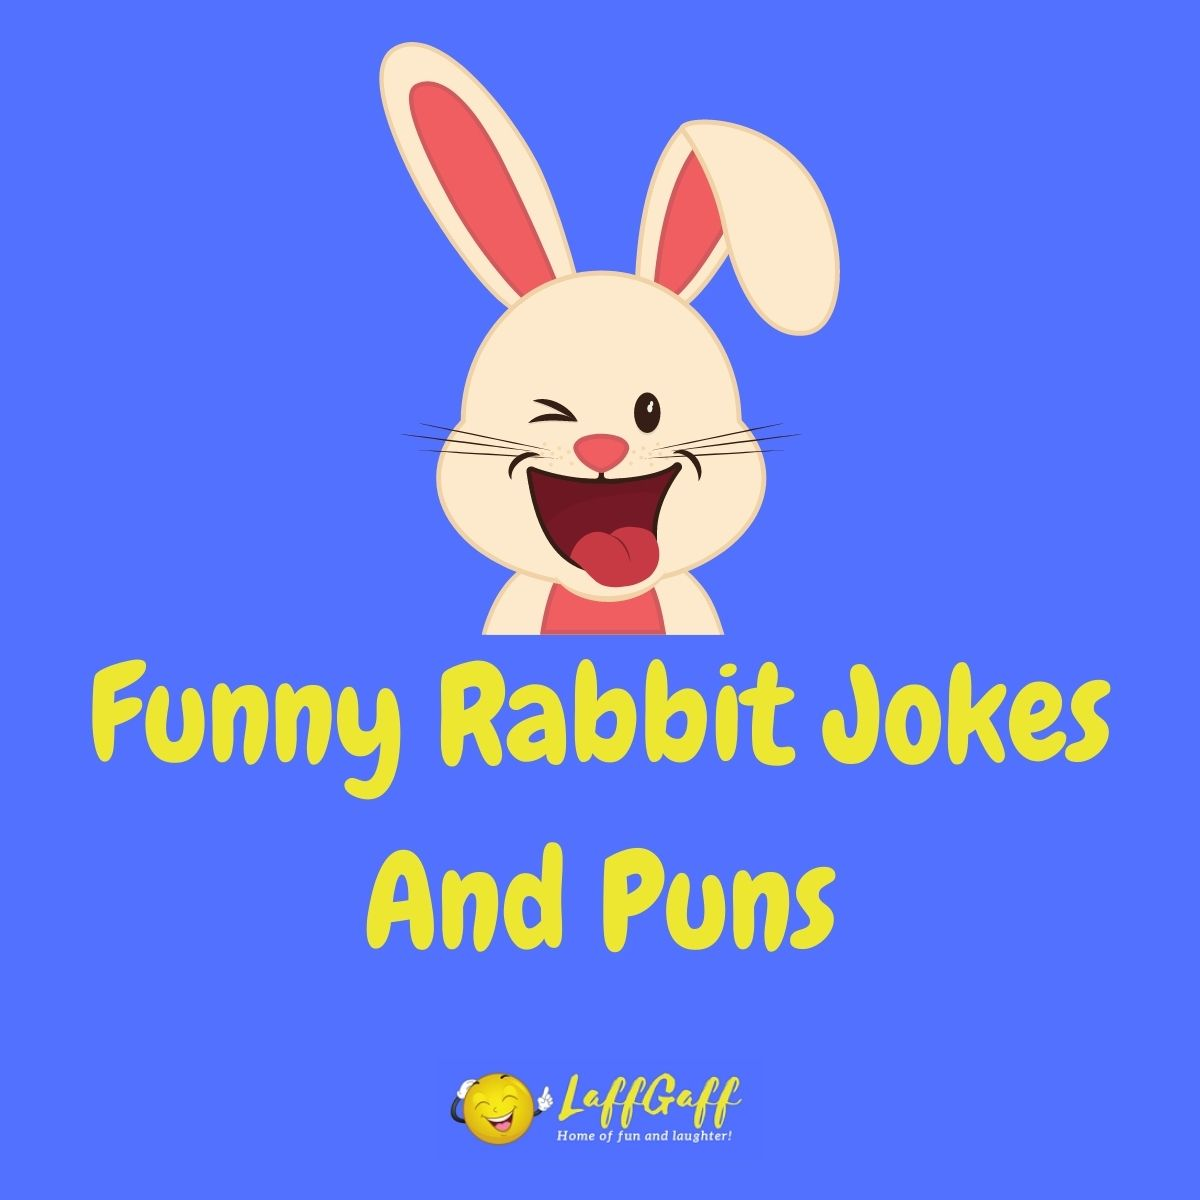 Featured image for a page of funny rabbit jokes and puns.